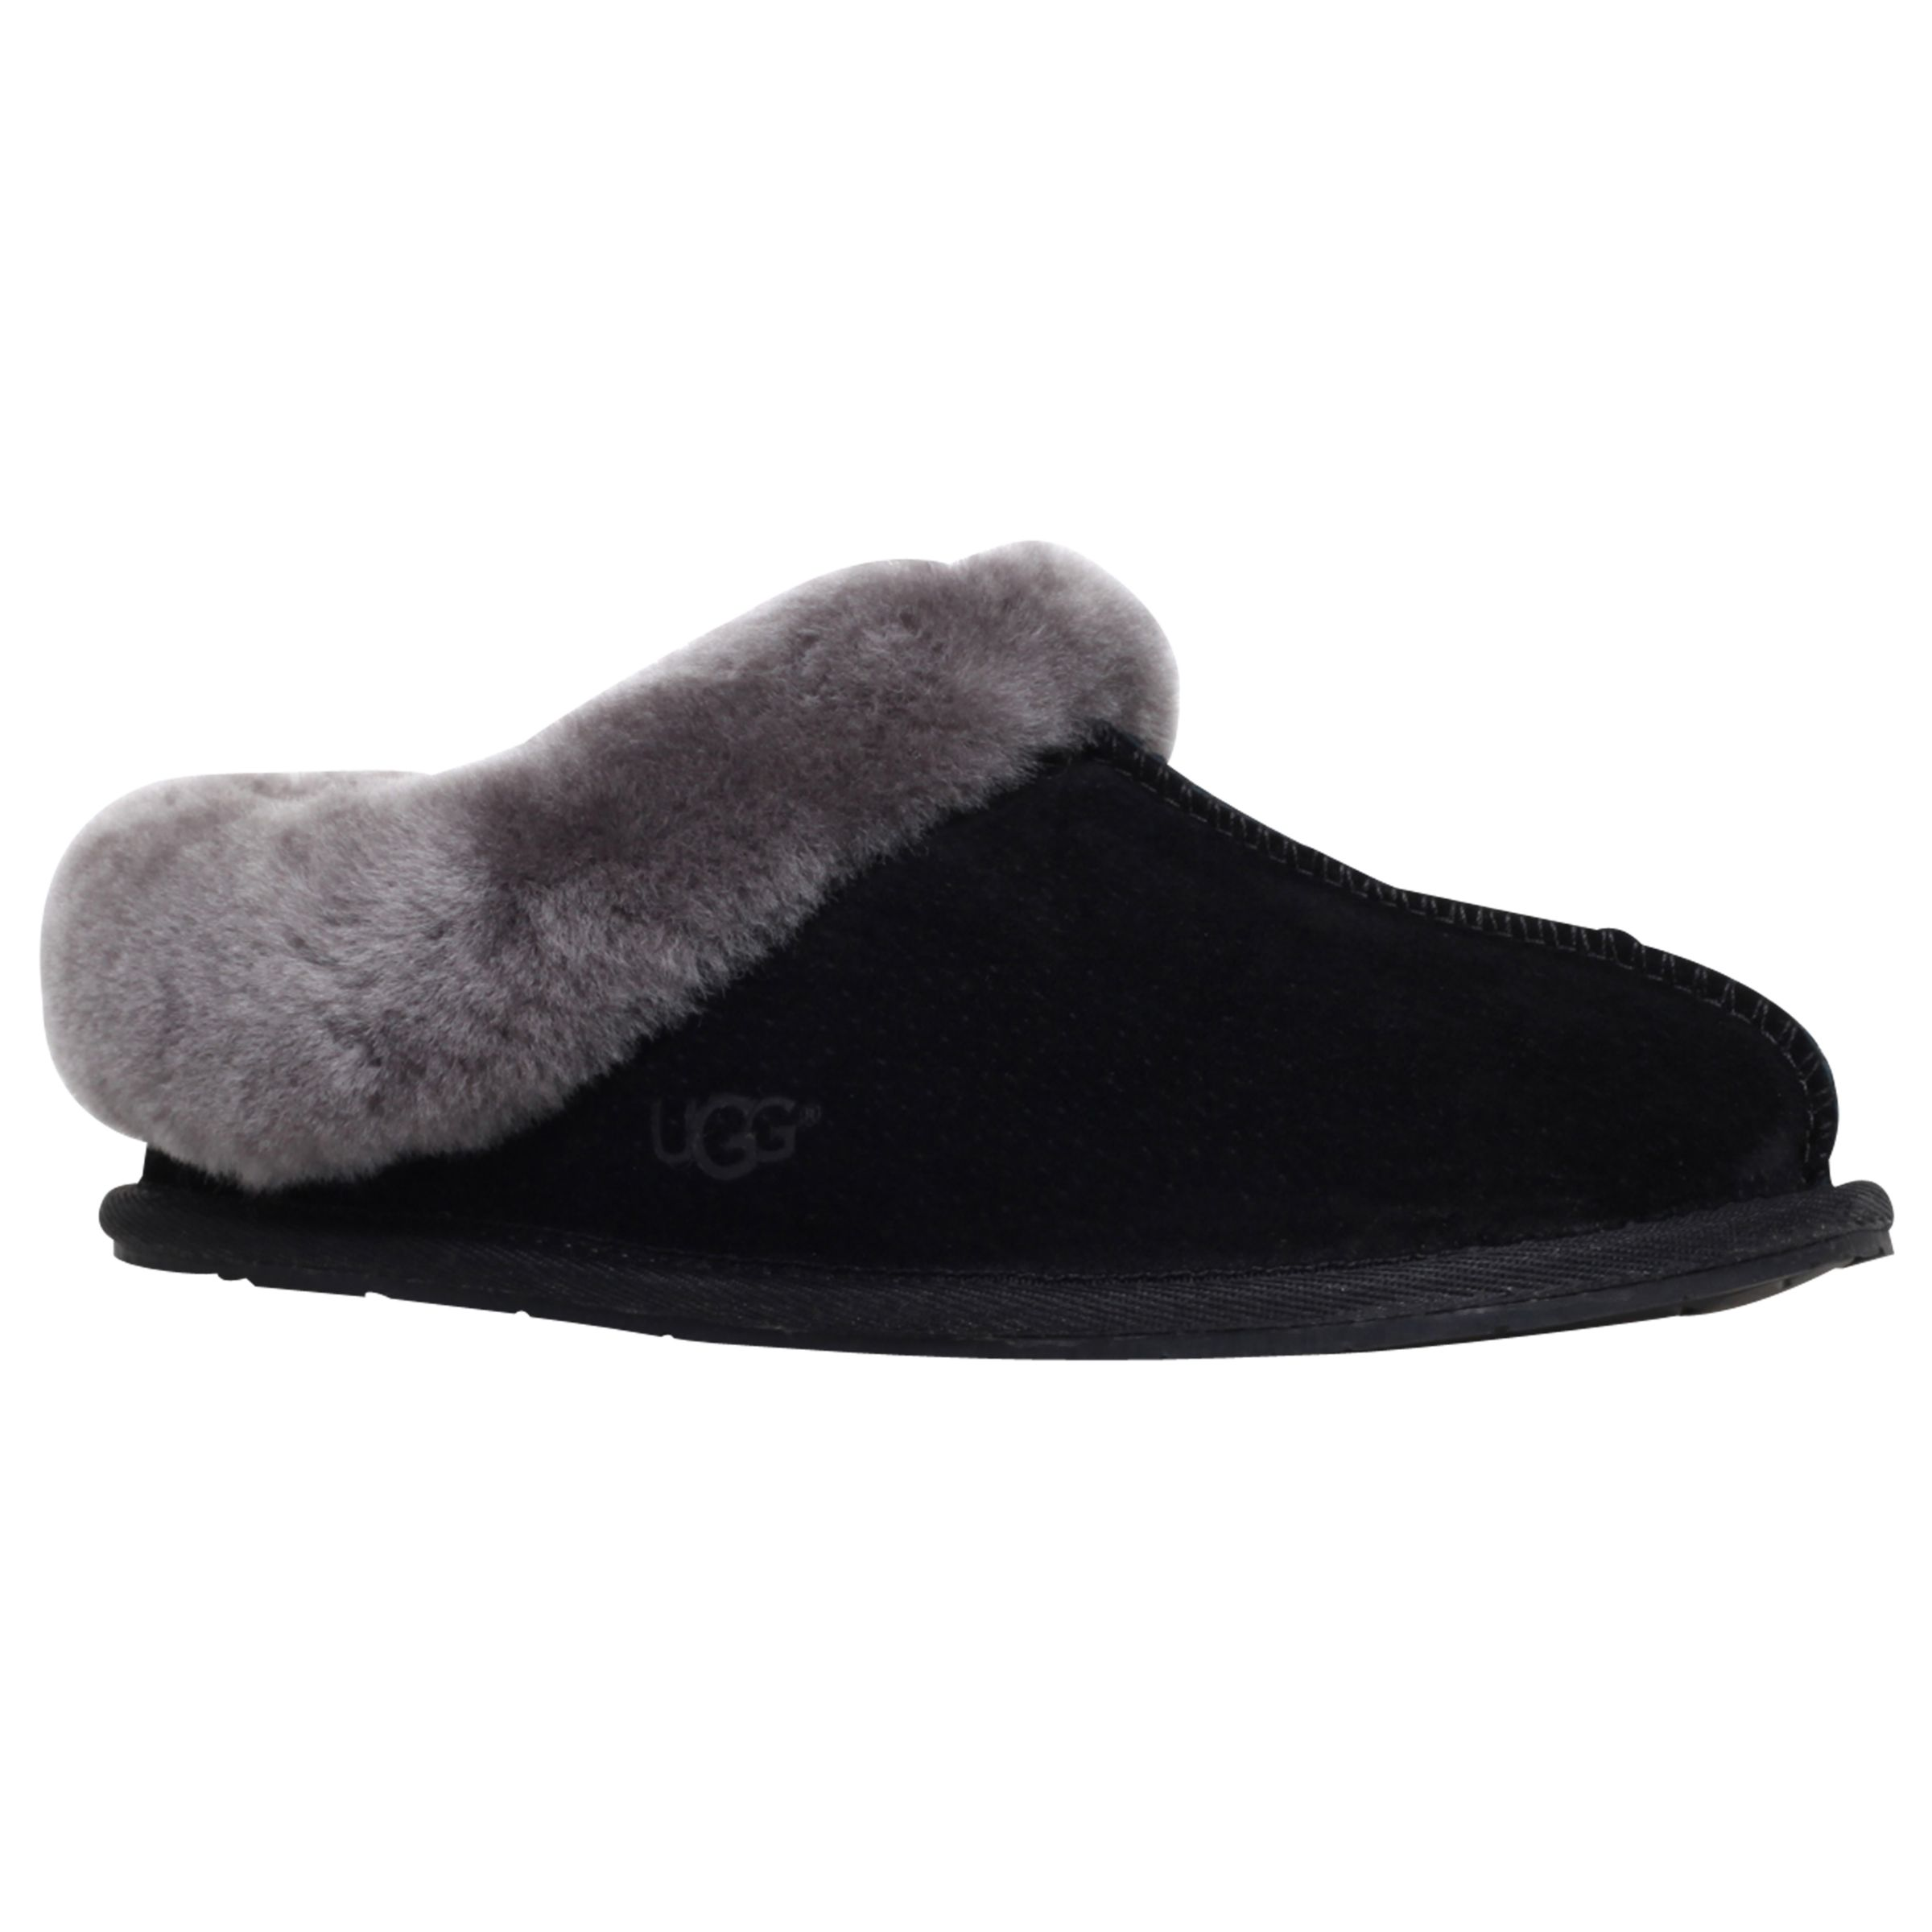 d1592b1b6a3 UGG Moraene Suede Slippers at John Lewis & Partners